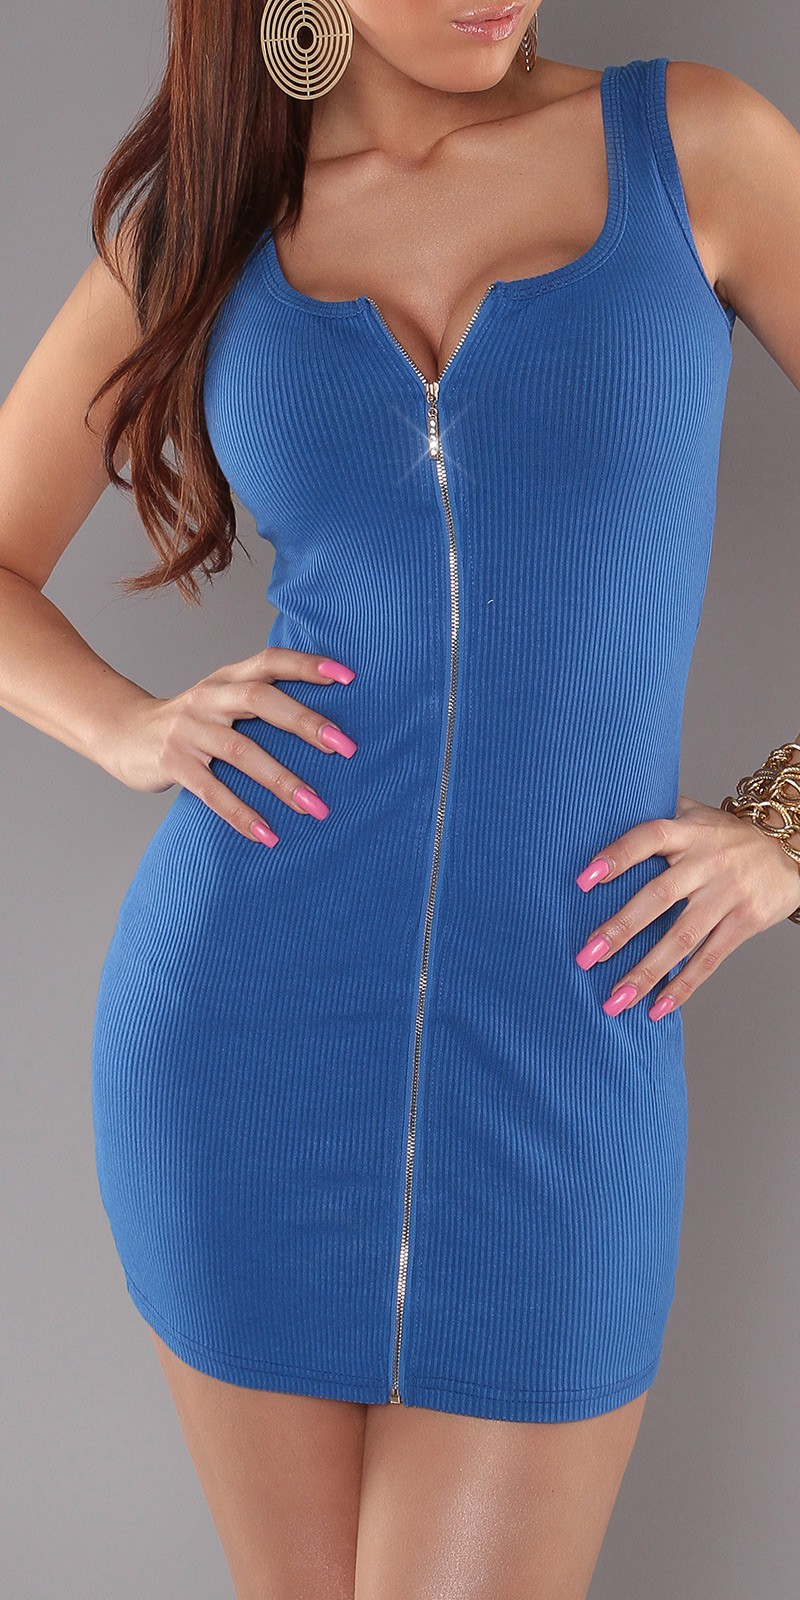 Blue Sexy Minidress With Zipper